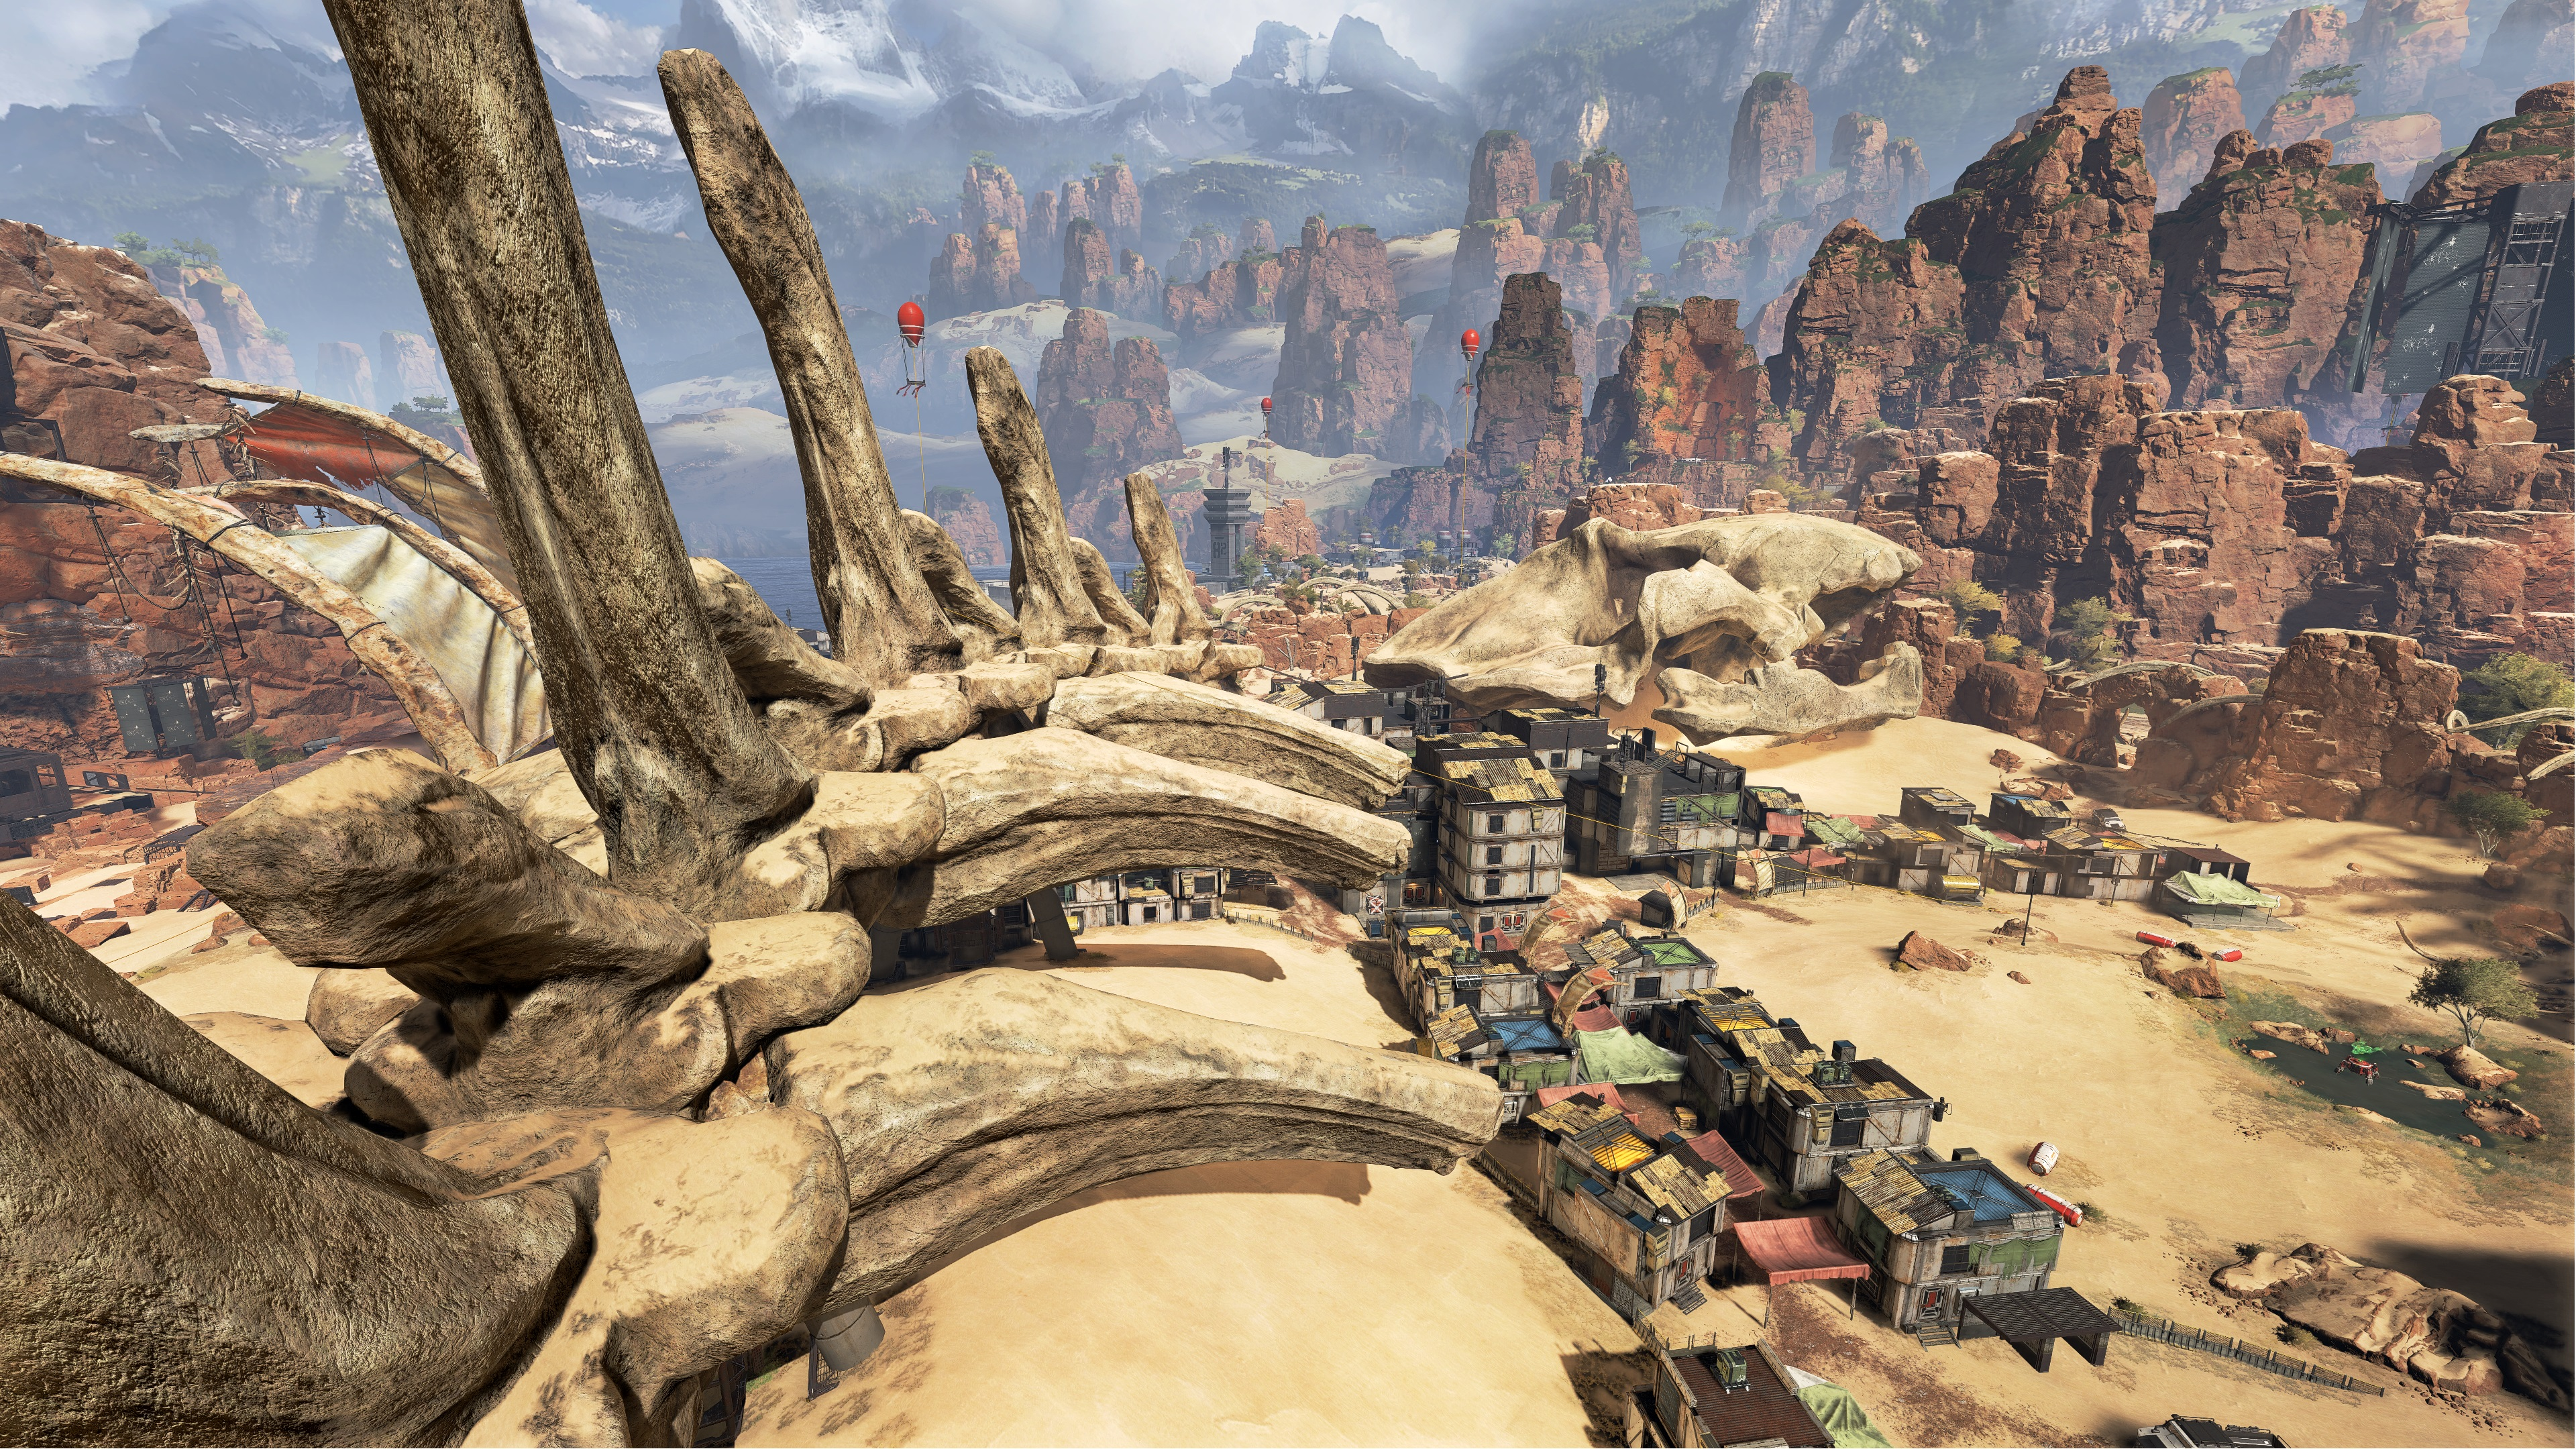 Why Respawn made Apex Legends instead of Titanfall 3 - Polygon